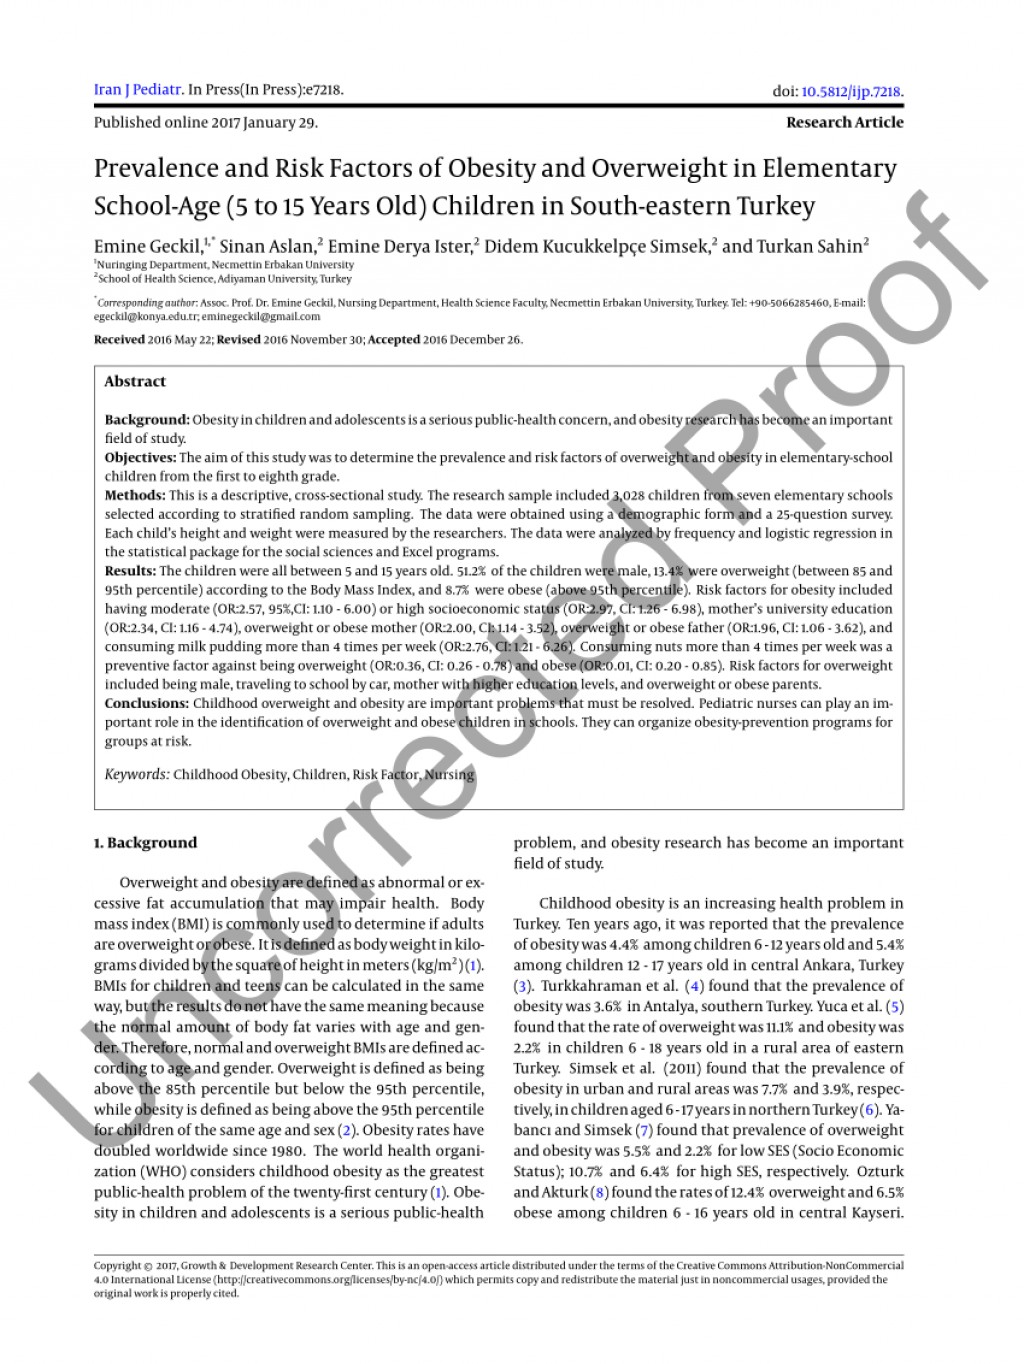 003 Nursing Research Articles On Childhood Obesity Largepreview Stirring Large